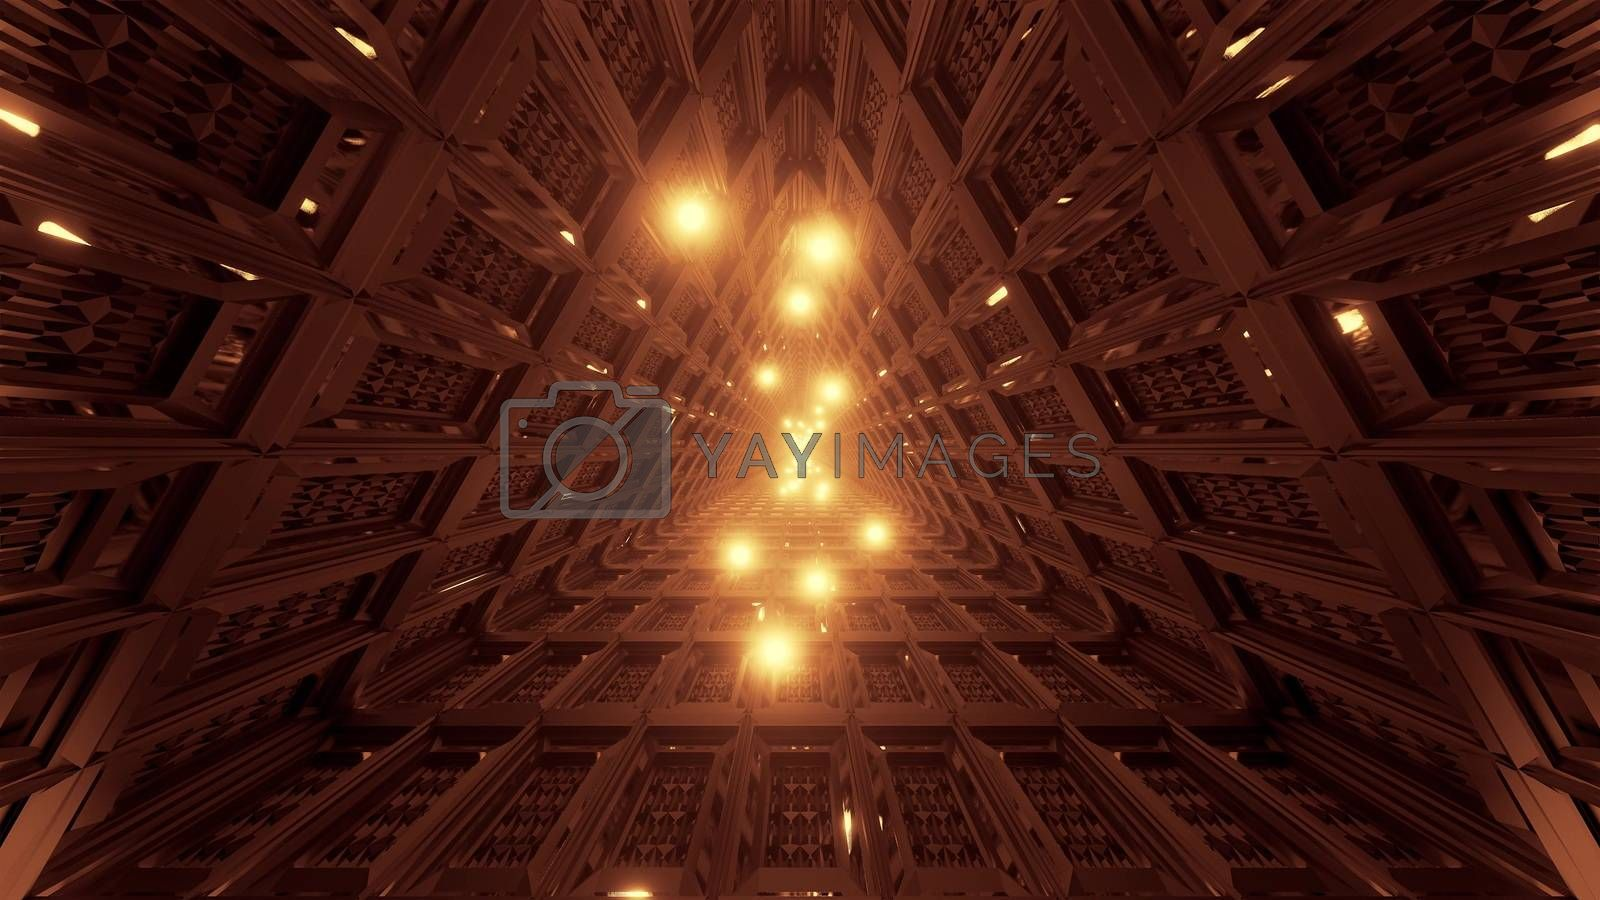 glowing spheres flying through triangle technical tunnel corridor 3d illustration backgrounds wallpaper graphics artworks, flying glowing sphres particle 3d rendering design